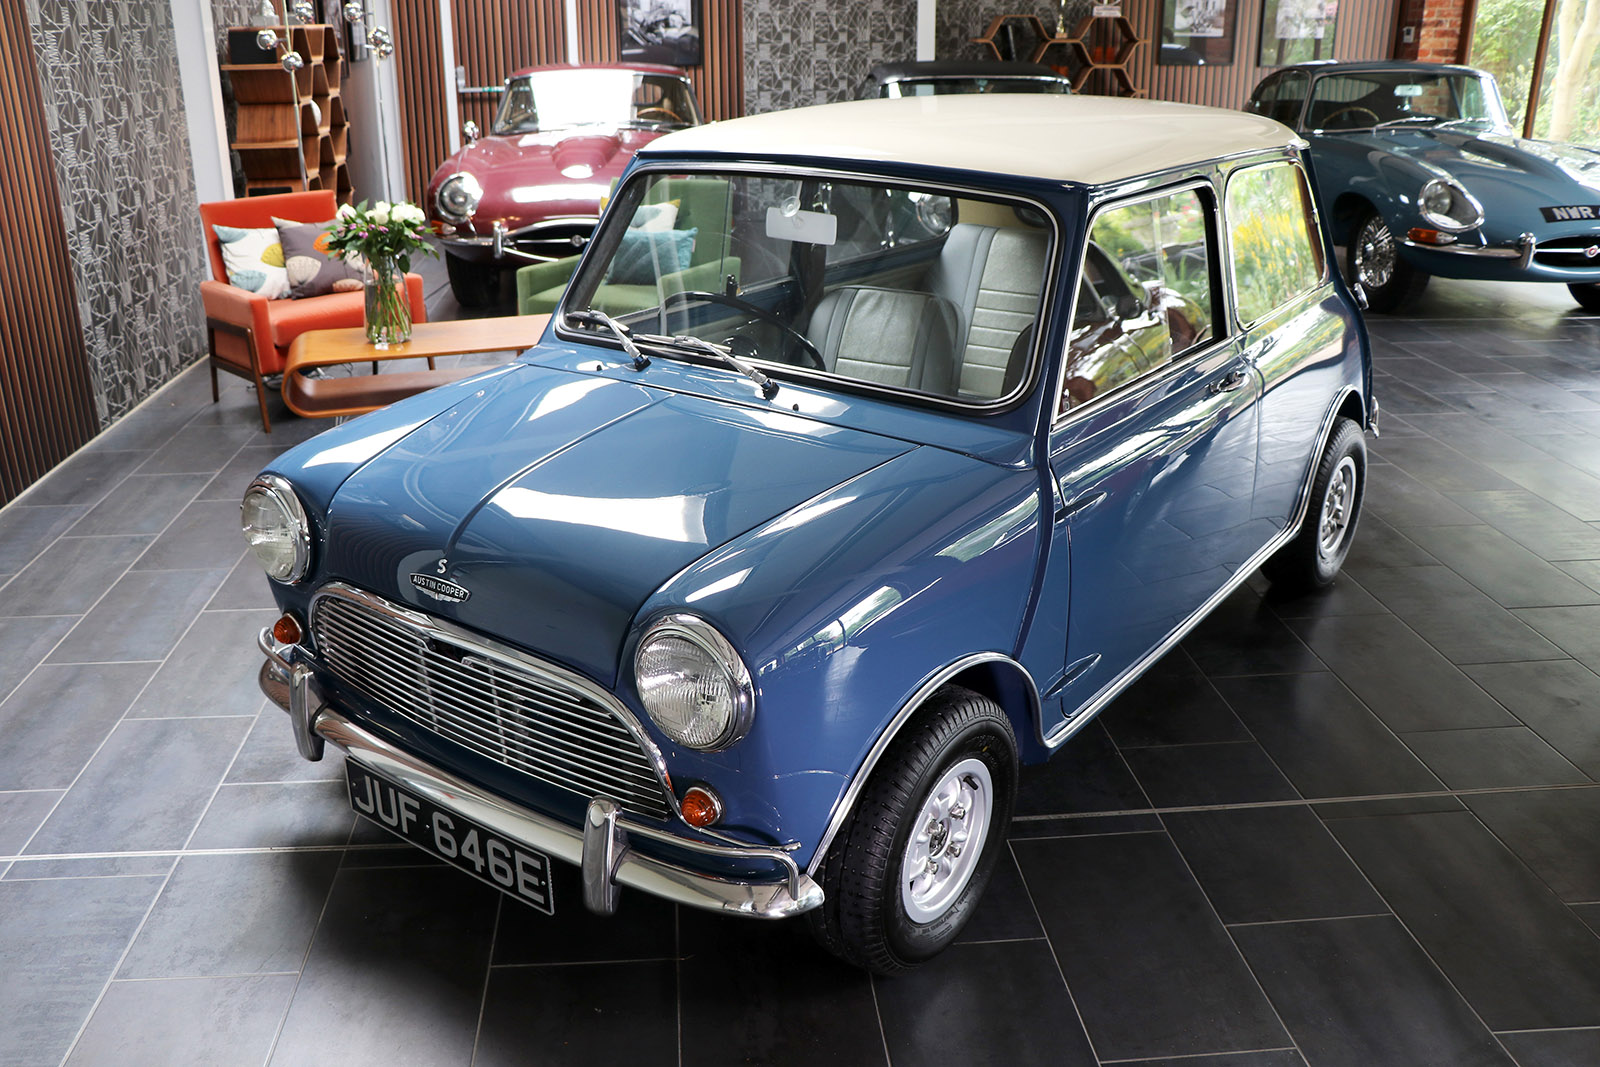 1967 blue 1275 Mini Cooper S Sayer Selection Wilkinson 1 web.jpg